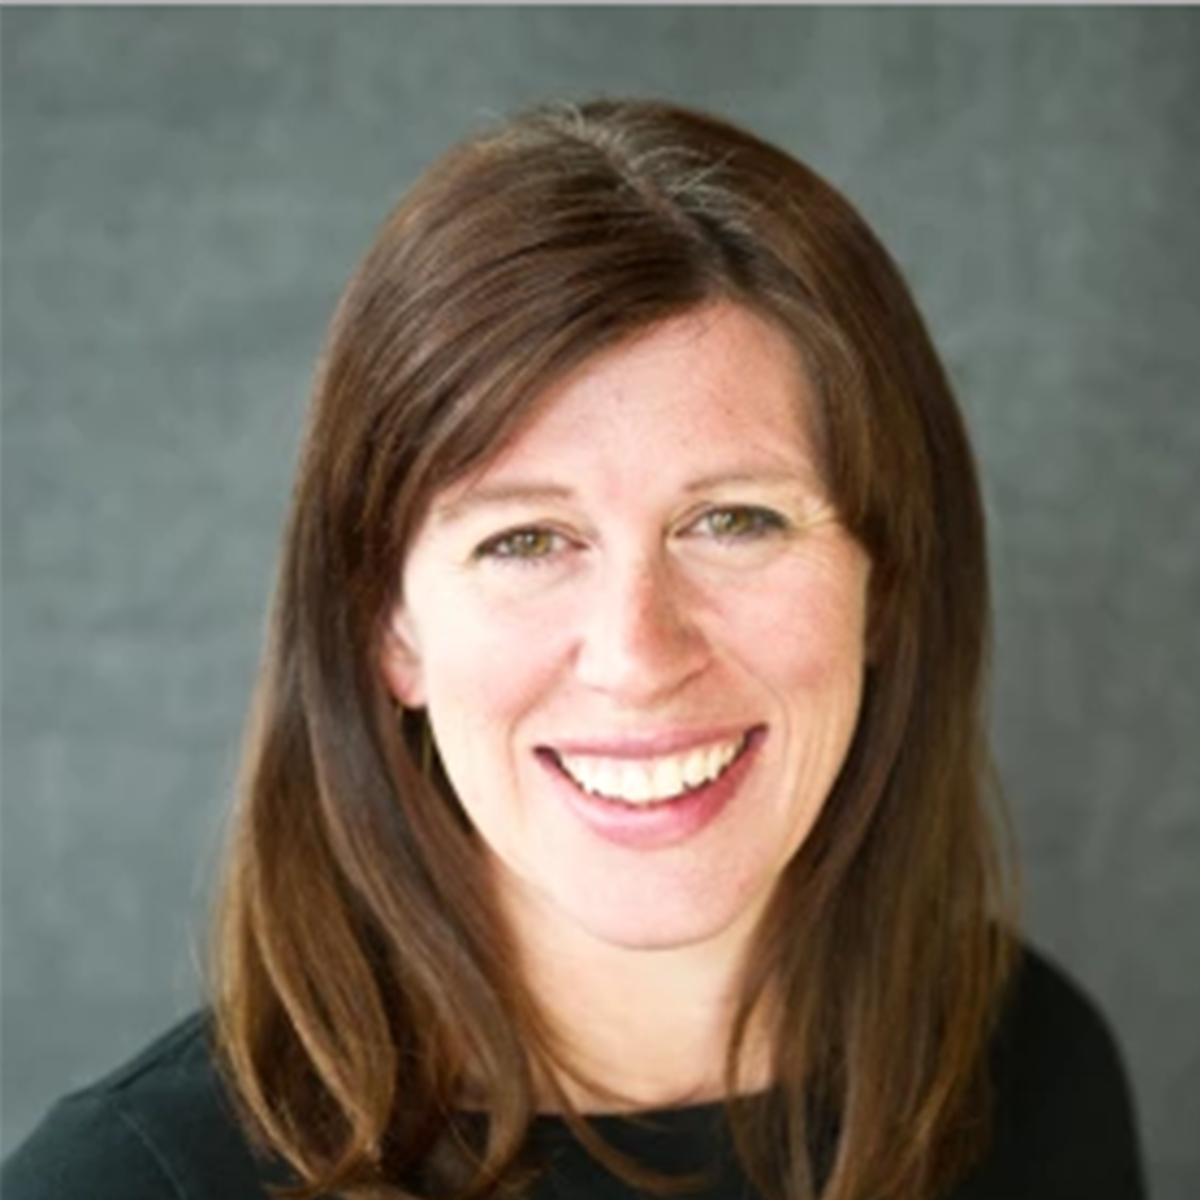 AMY KEMP , FOUNDER OF MOUNTAINTOP MEDIA, FOUNDER OF ELEVATE, CO-FOUNDER OF CAMPSIGHT